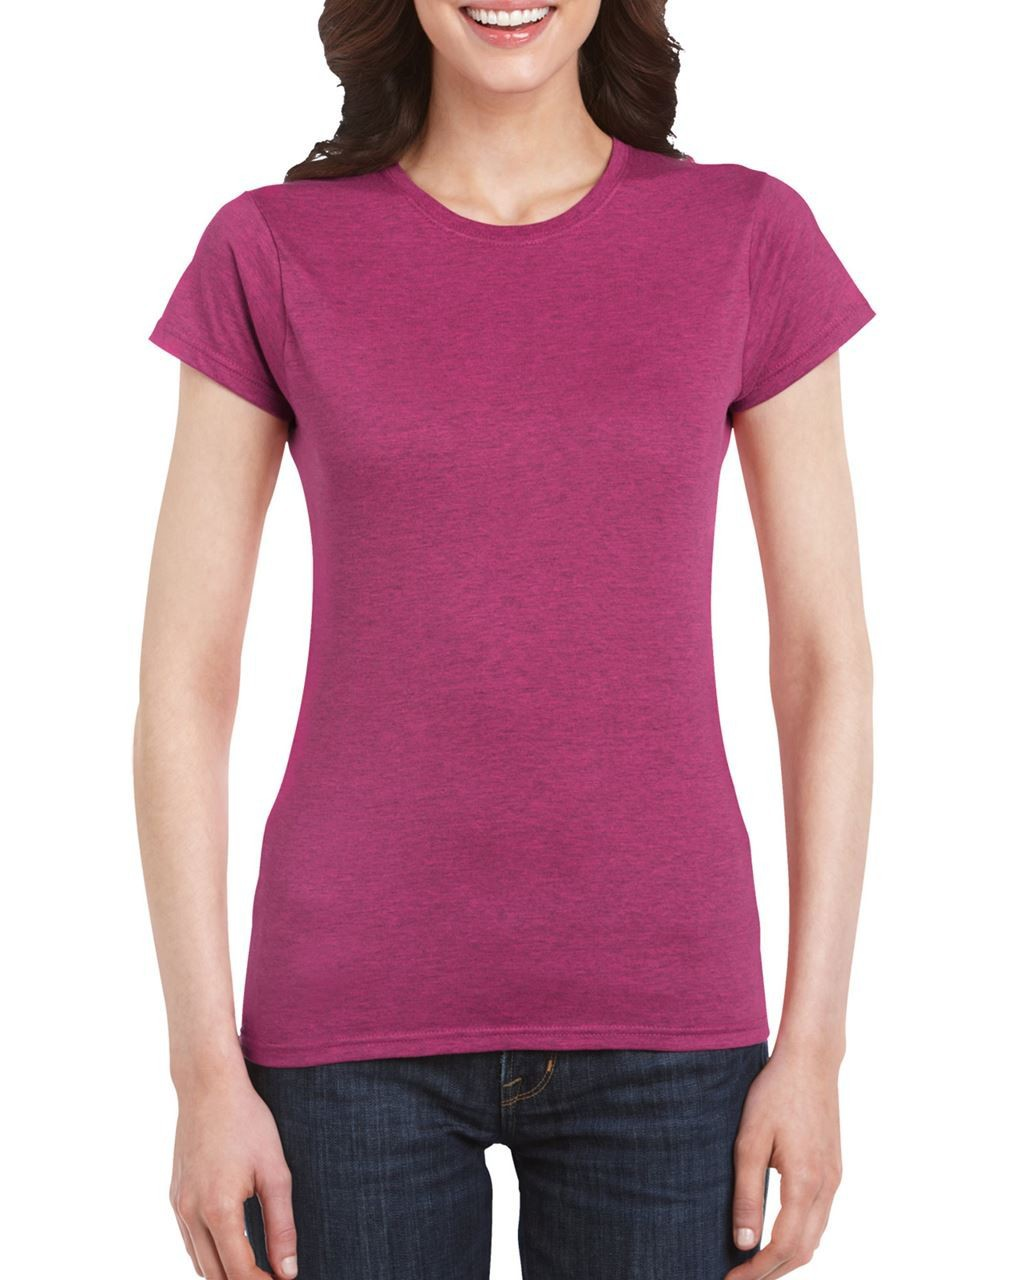 d37d6acb Gildan SoftStyle Ladies T-shirt, Antique Heliconia, S (T-shirt, 90 ...